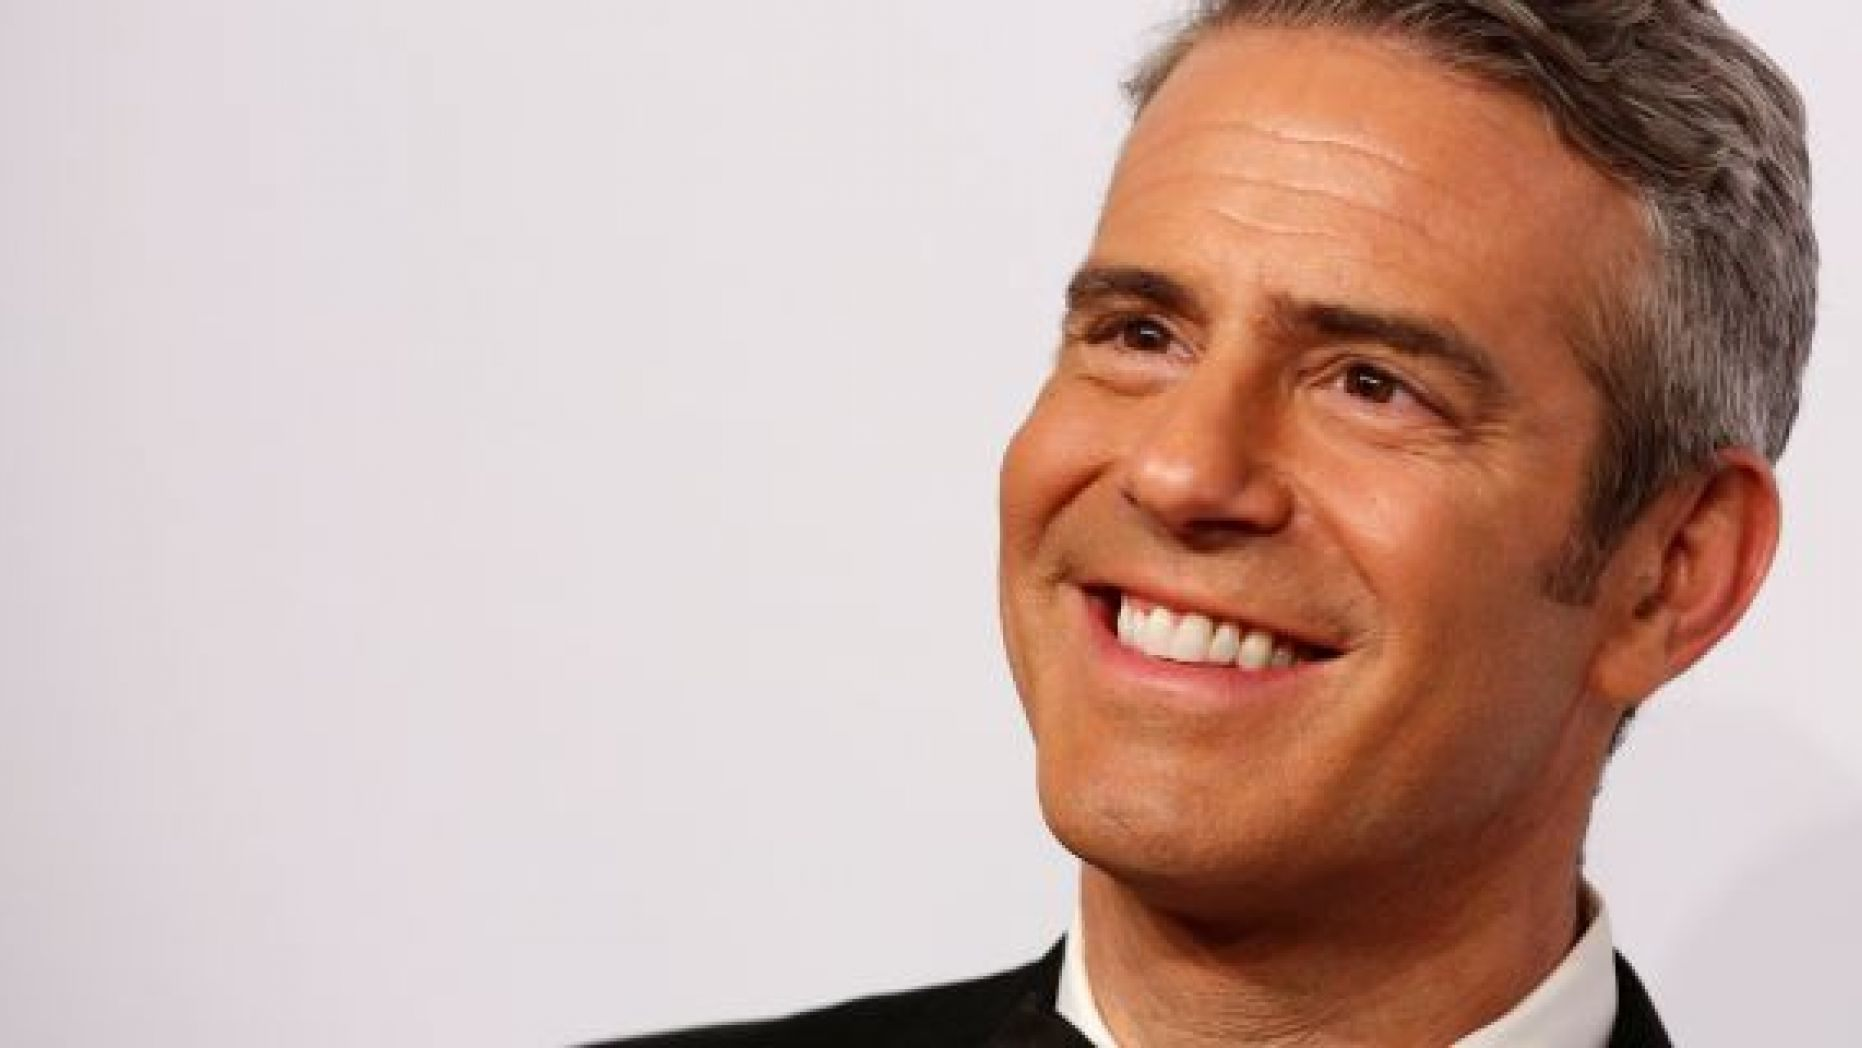 Andy Cohen Announces That He's Going To Be A Dad Soon Via Surrogate